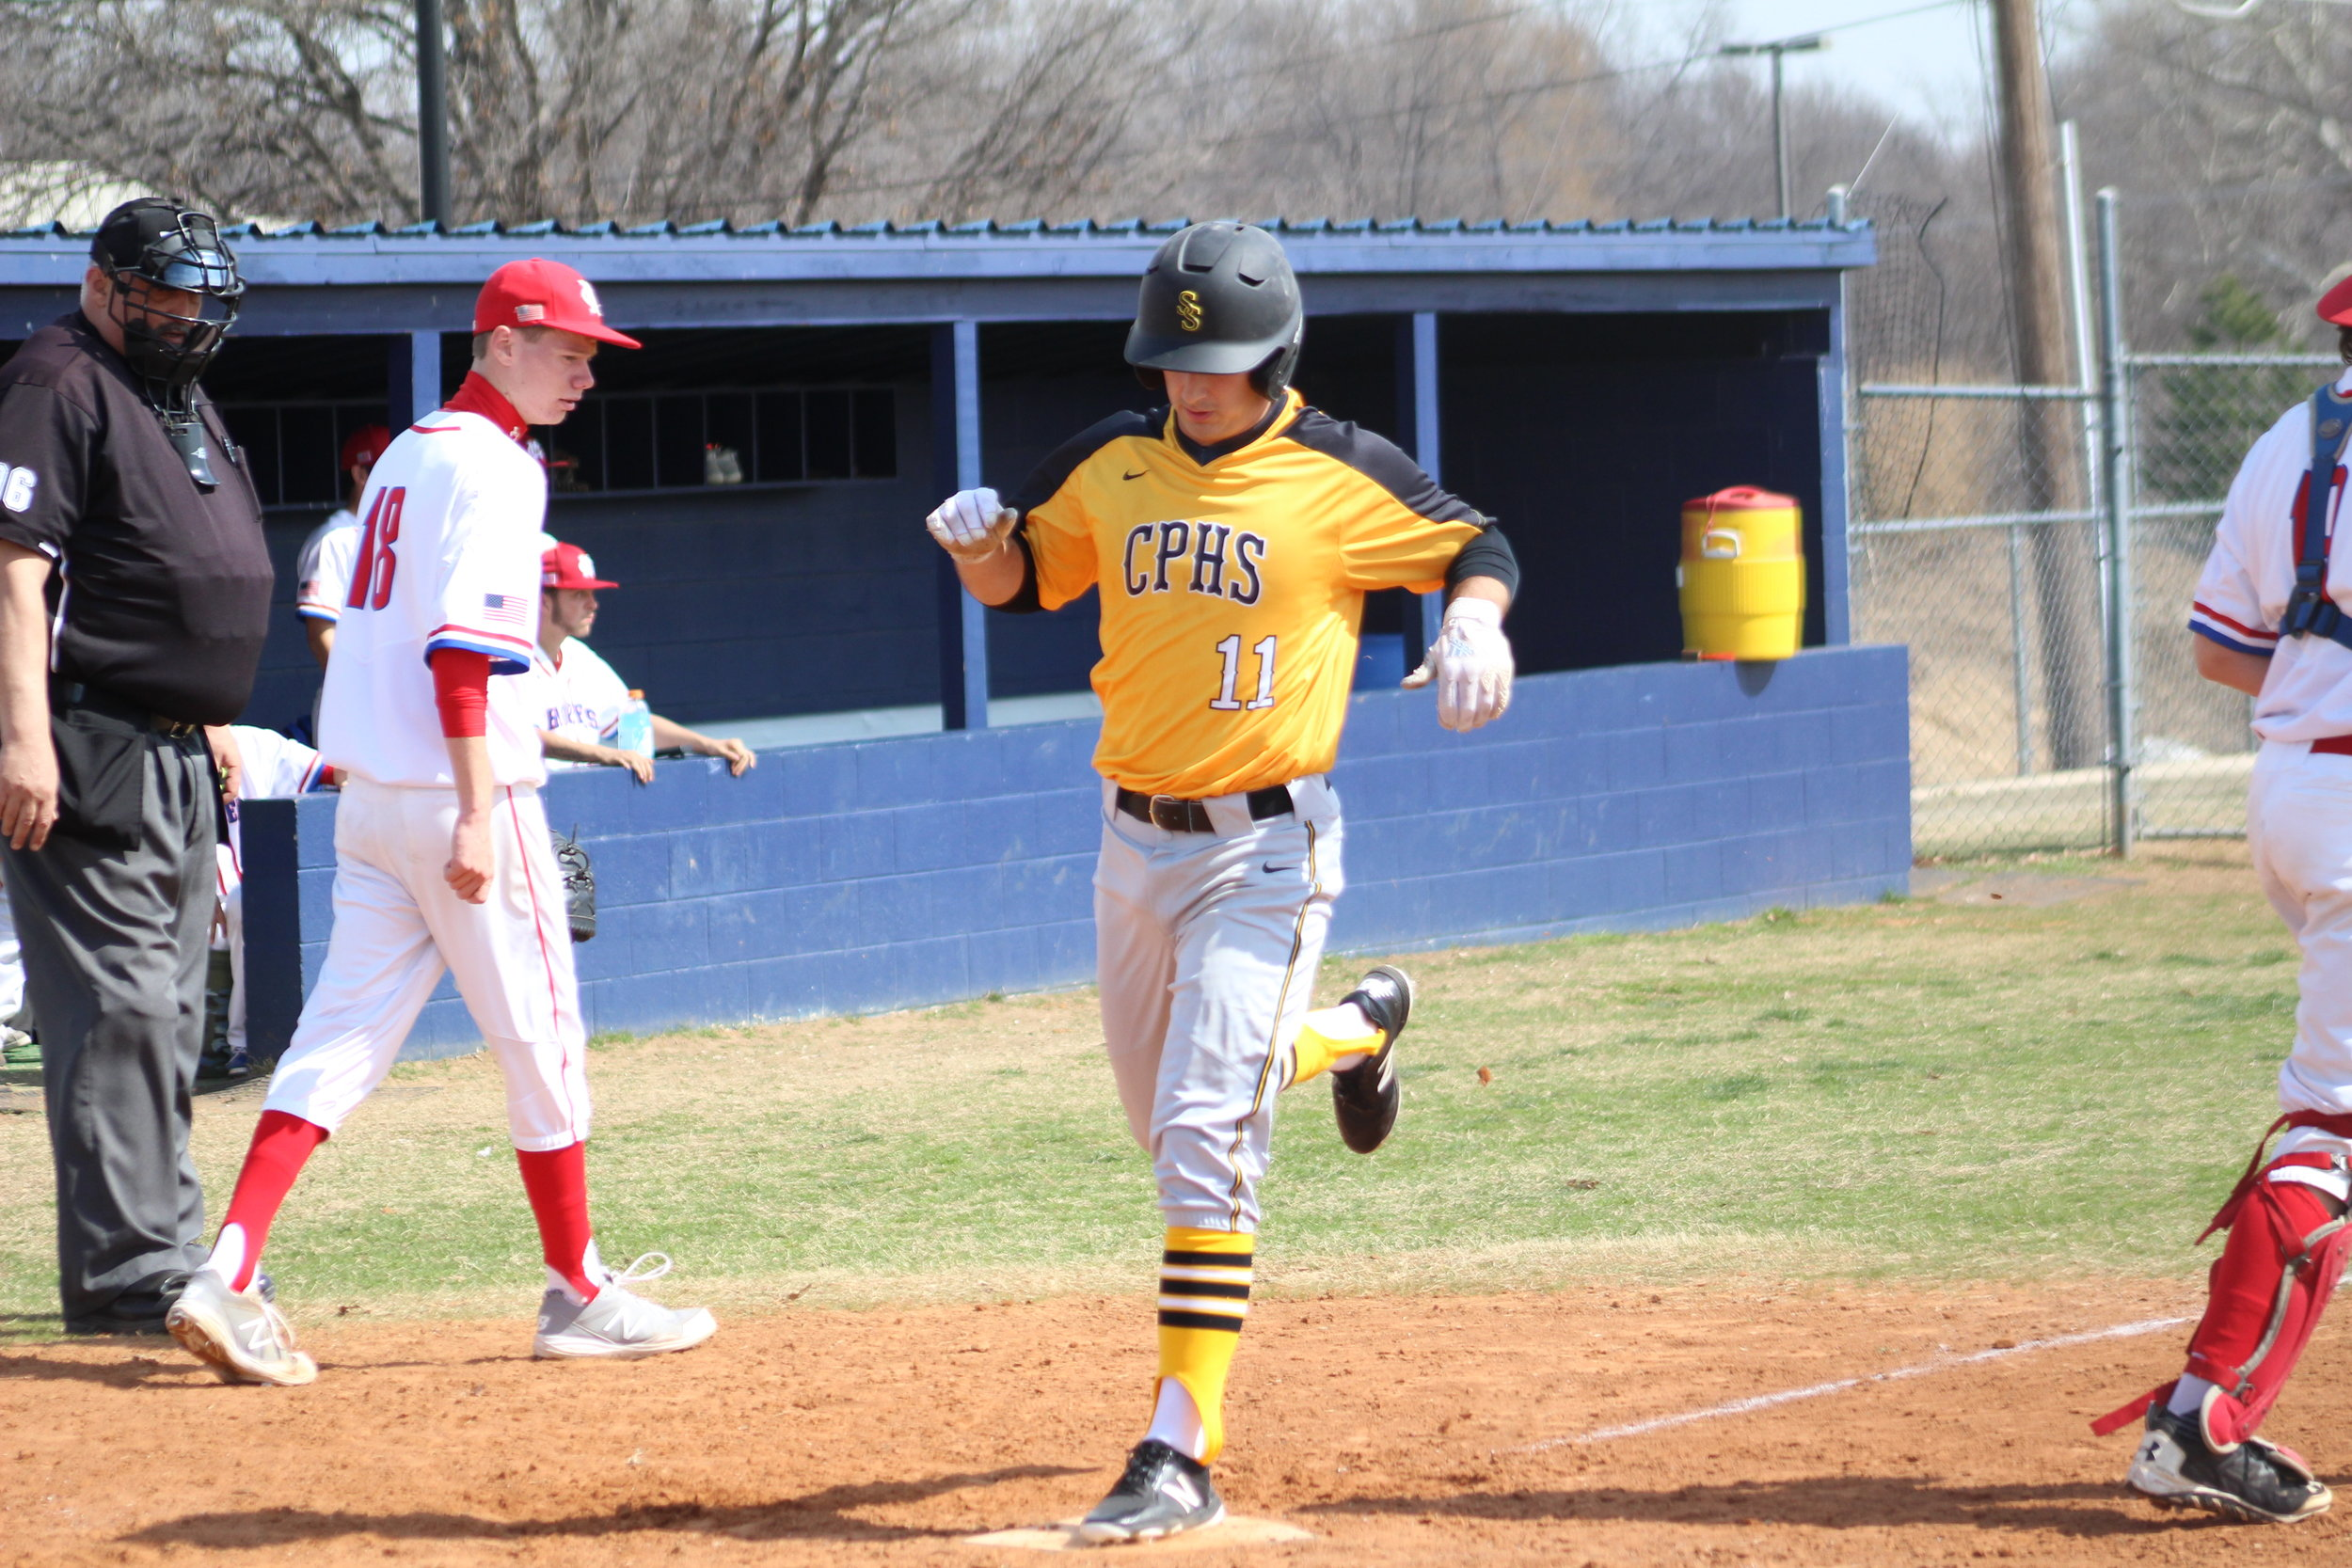 Braden Askew (.394) led the Sandites in offense with two hits, two runs, and two RBI.